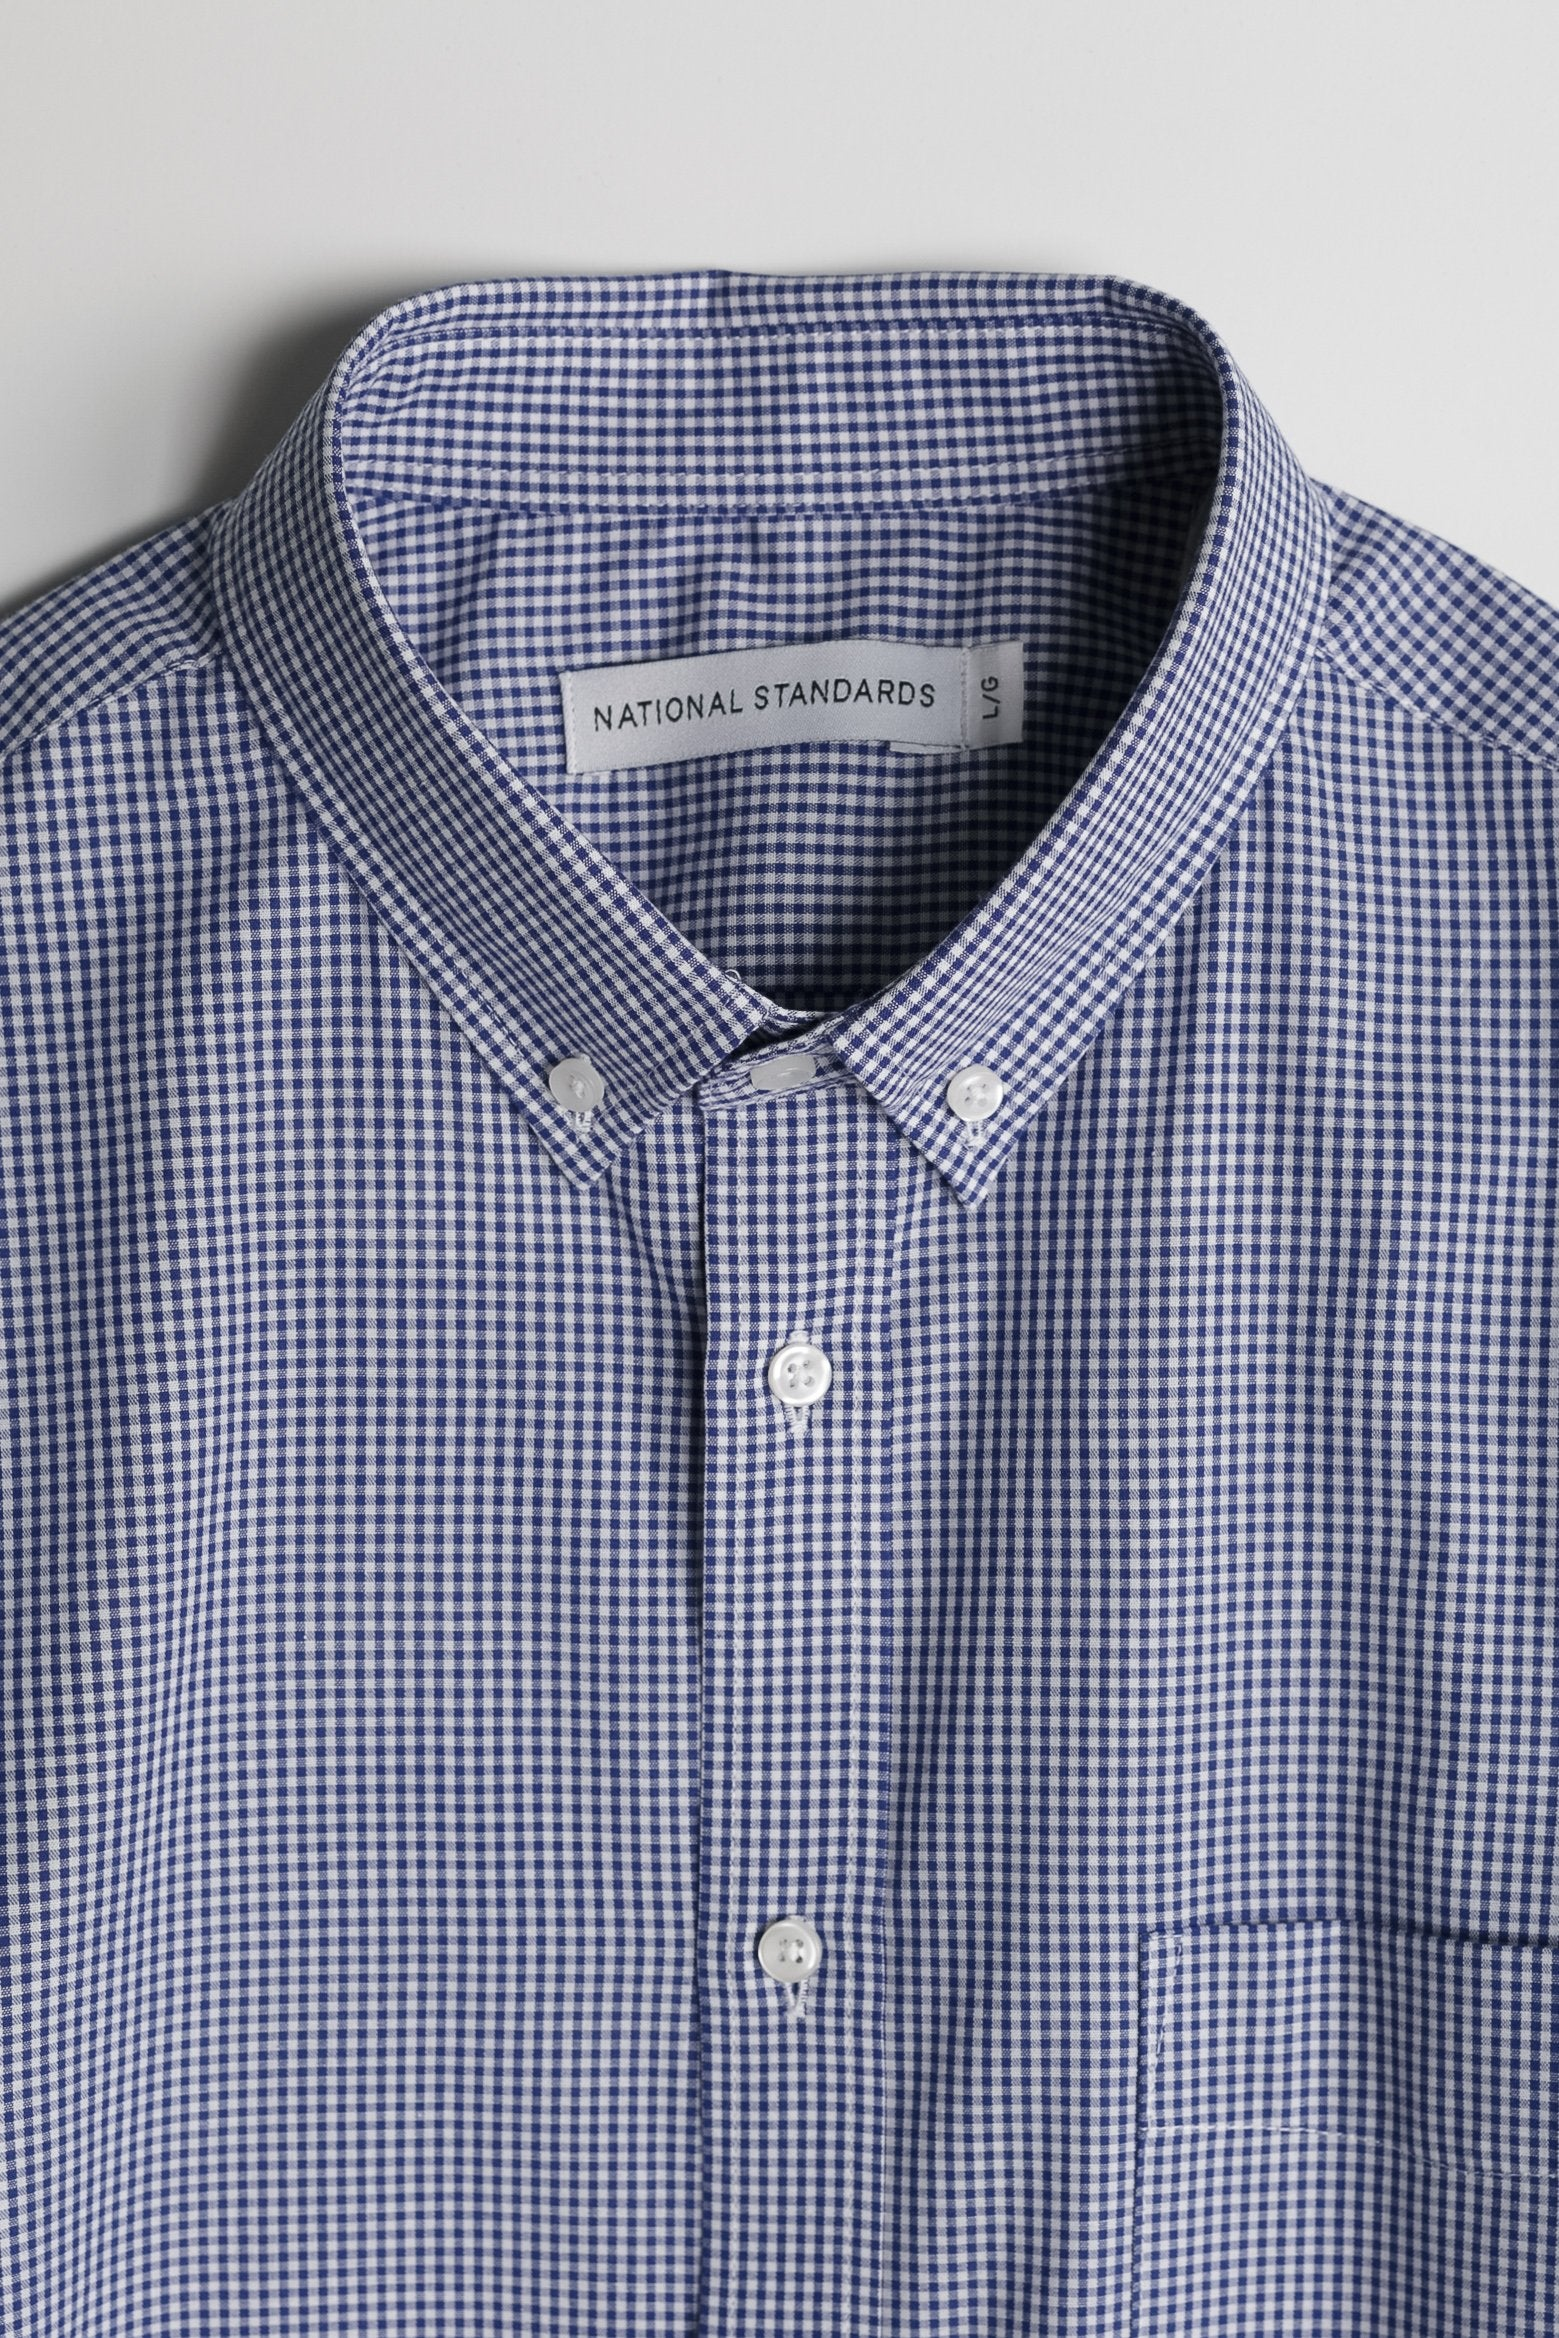 japanese-mini-gingham-in-blue-and-white 02